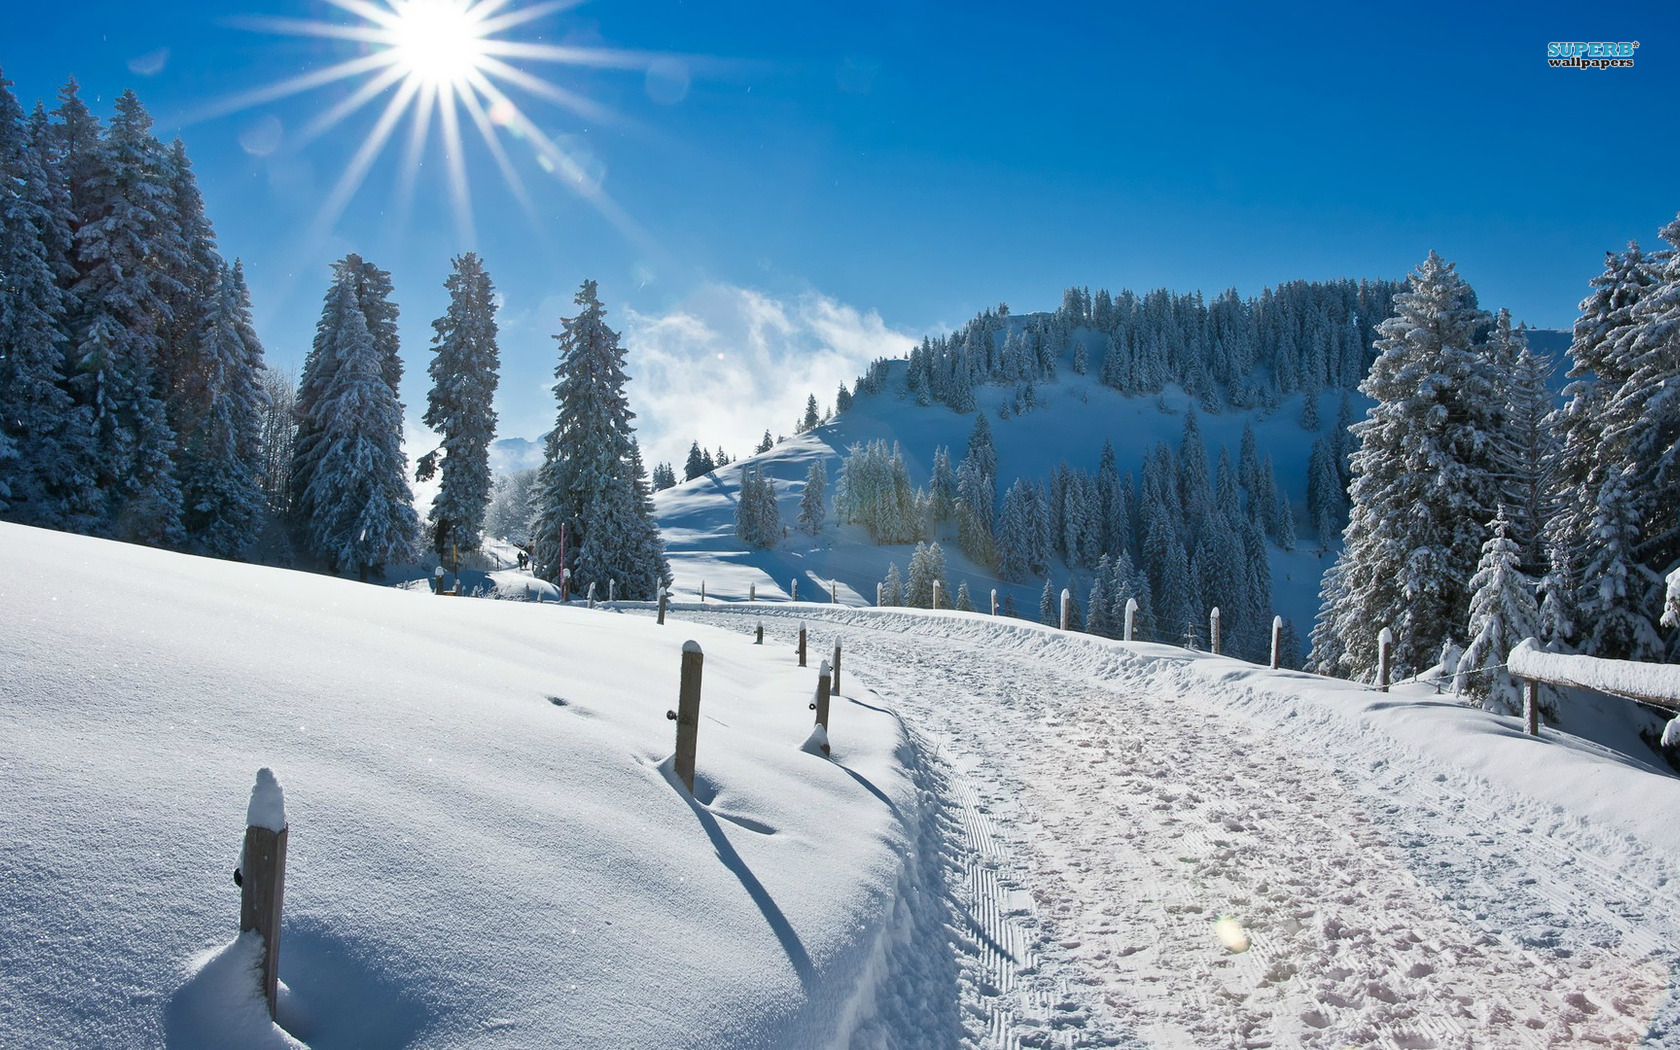 Winter wallpapers hd free download pixelstalk beautiful winter winter wallpapers hd free download pixelstalk beautiful winter scene hd desktop wallpaper widescreen high 1680x1050 voltagebd